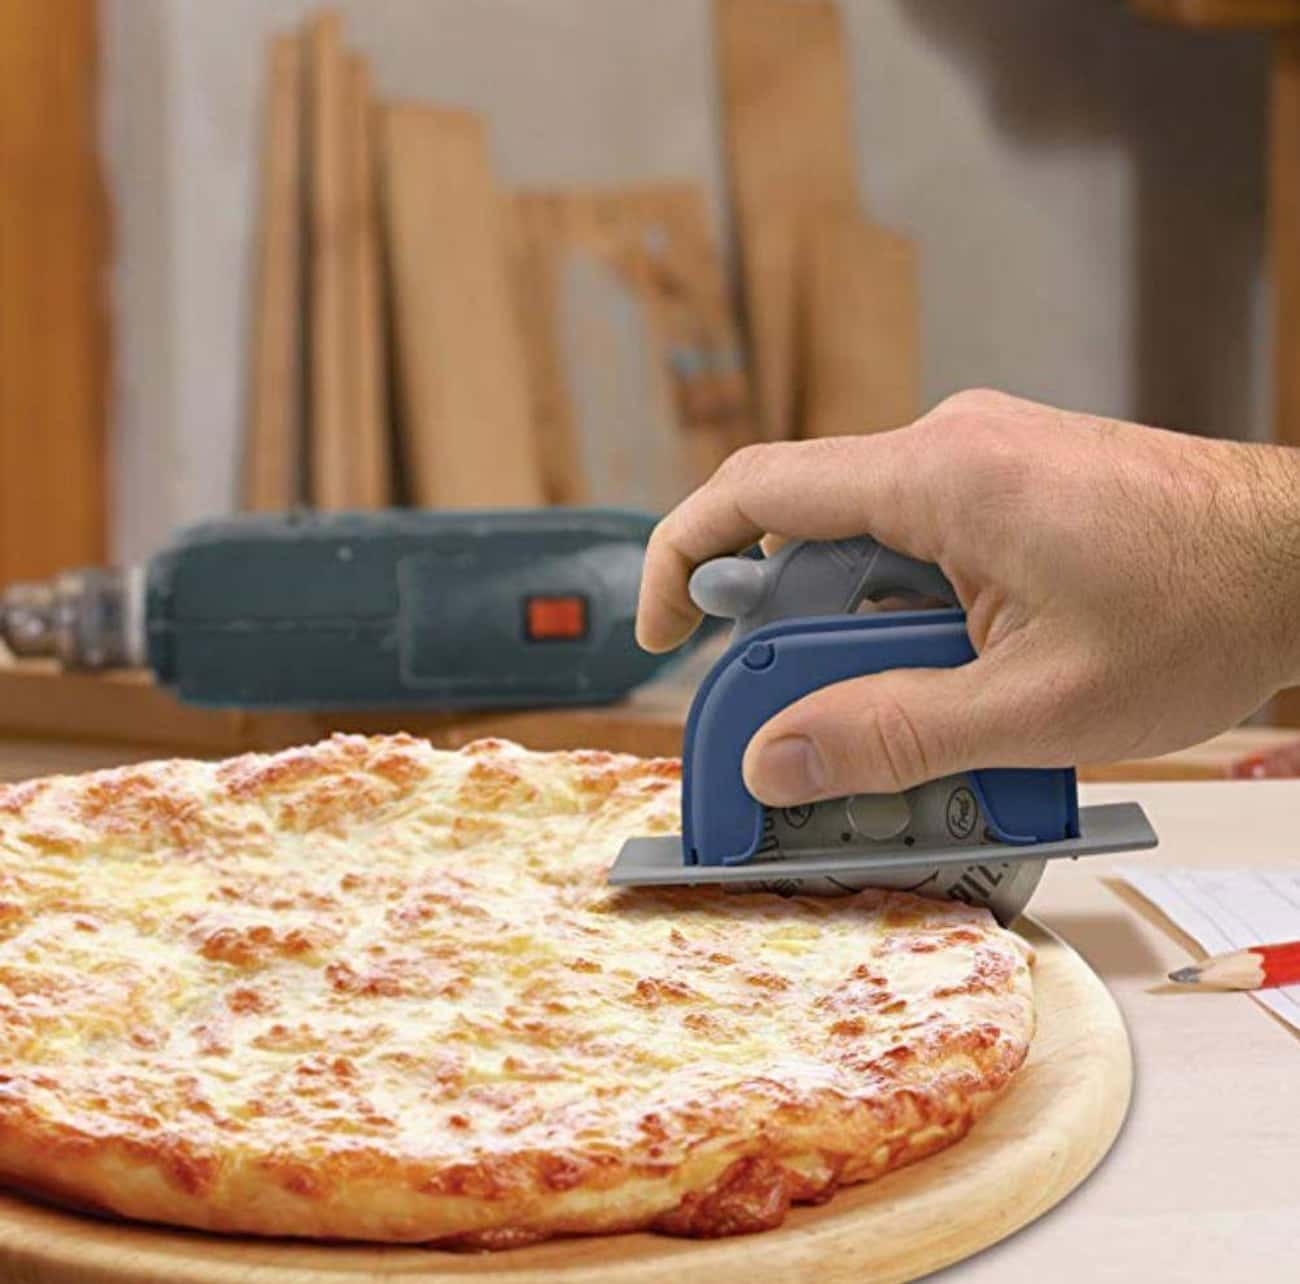 Circular Saw Pizza Wheel is listed (or ranked) 2 on the list The Best White Elephant Gifts